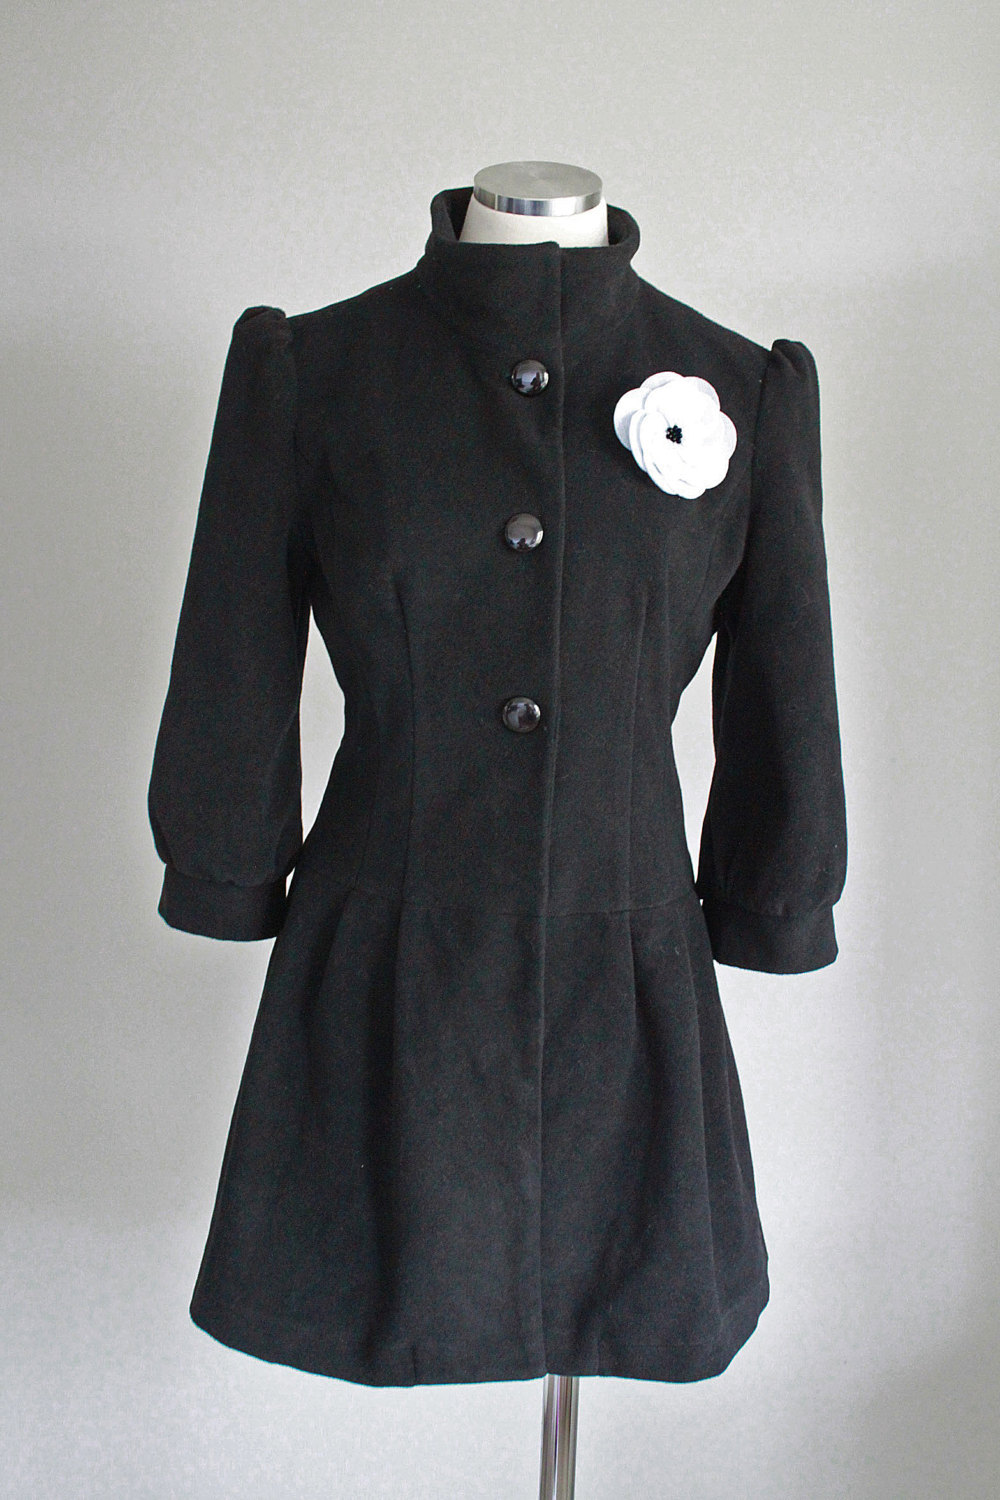 1940s Vintage Replica Black Steampunk Coat with White Flower Brooch